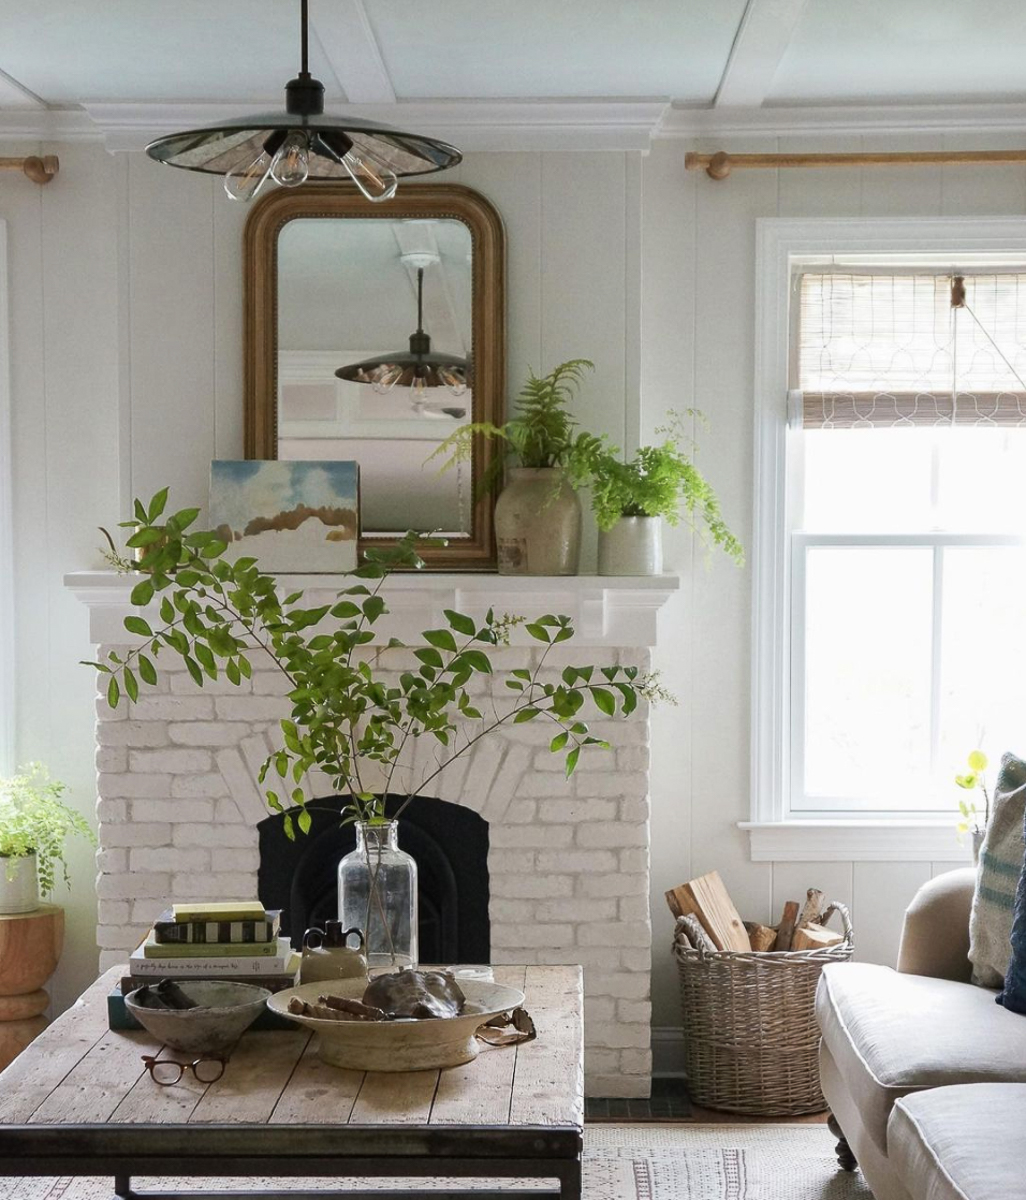 Painted brick fireplace in this stunning farmhouse filled with plants and vintage finds kellyelko.com